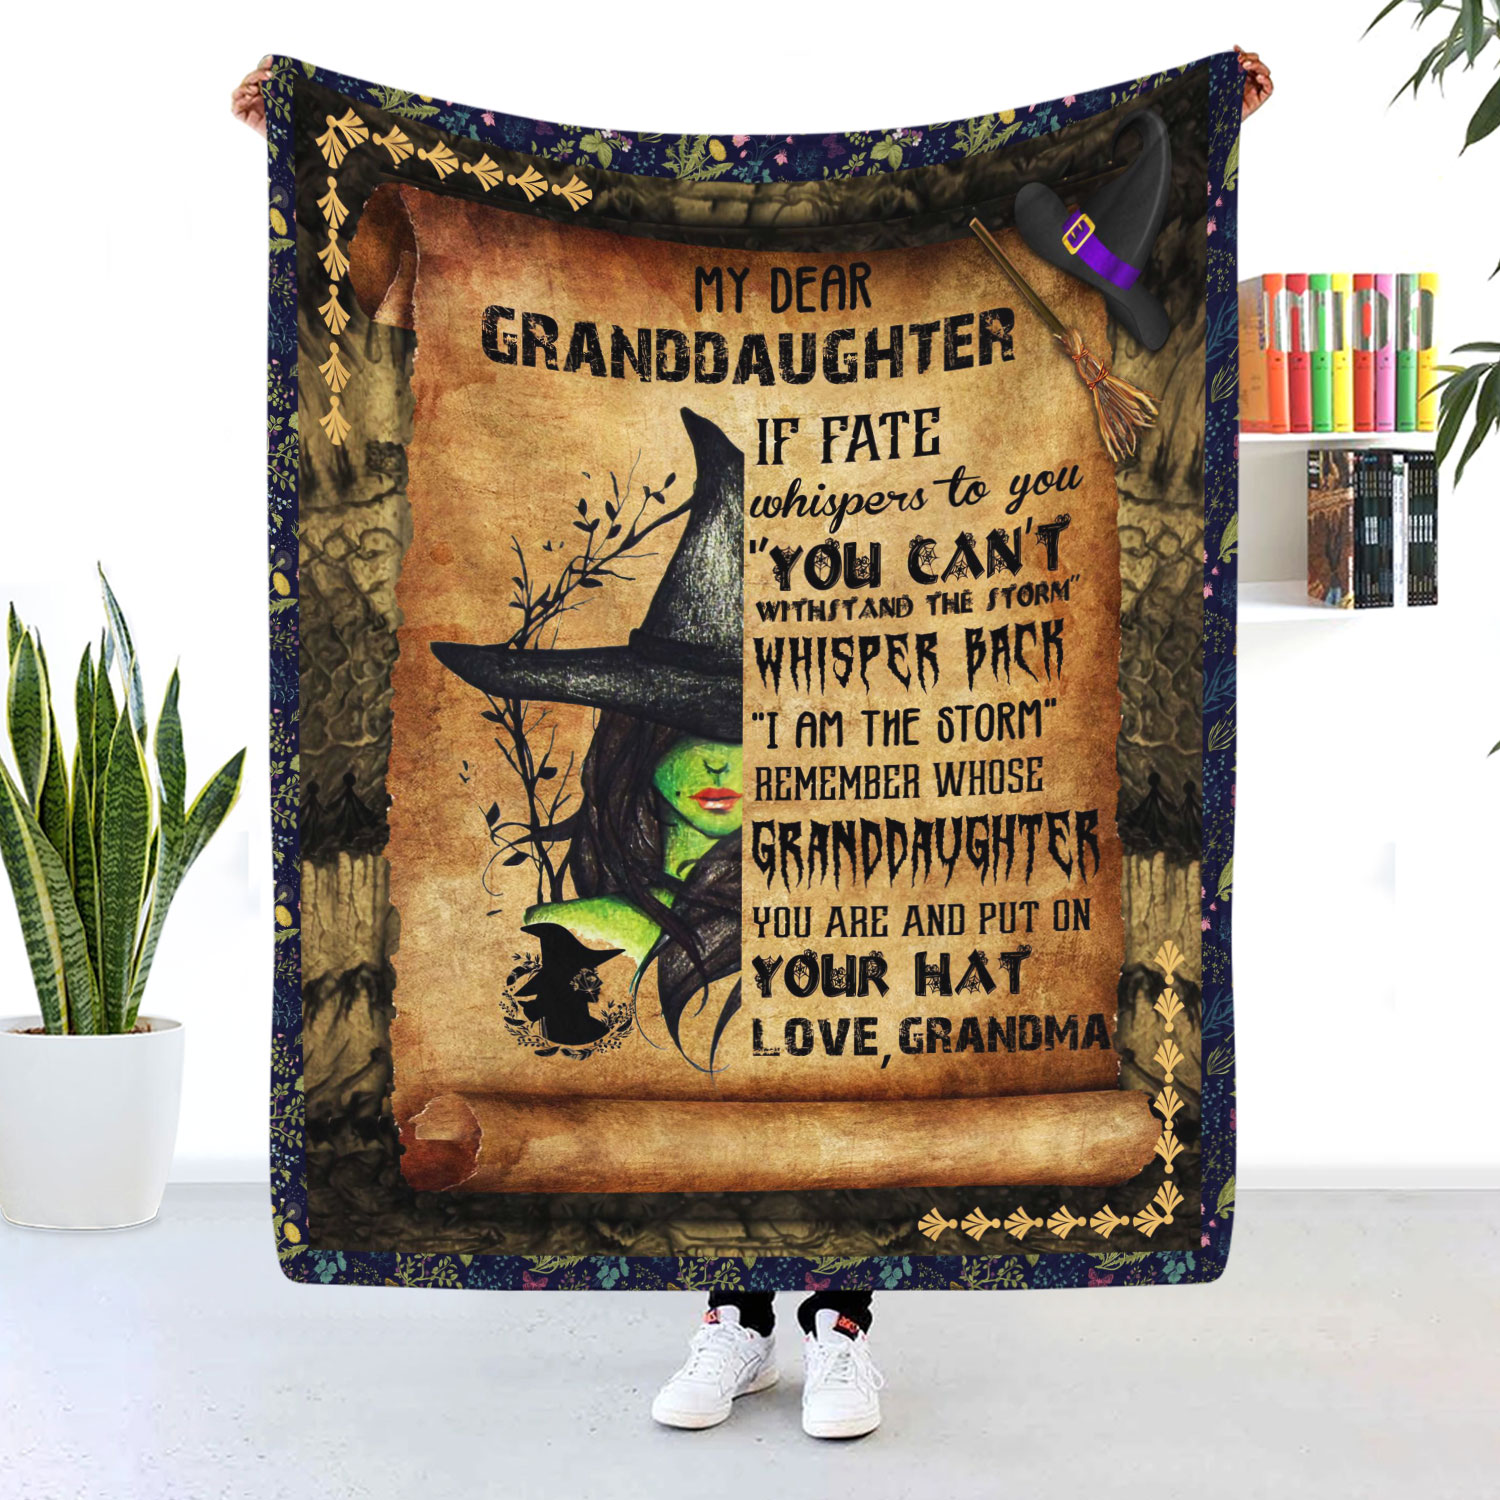 My Dear Granddaughter Witch Blanket